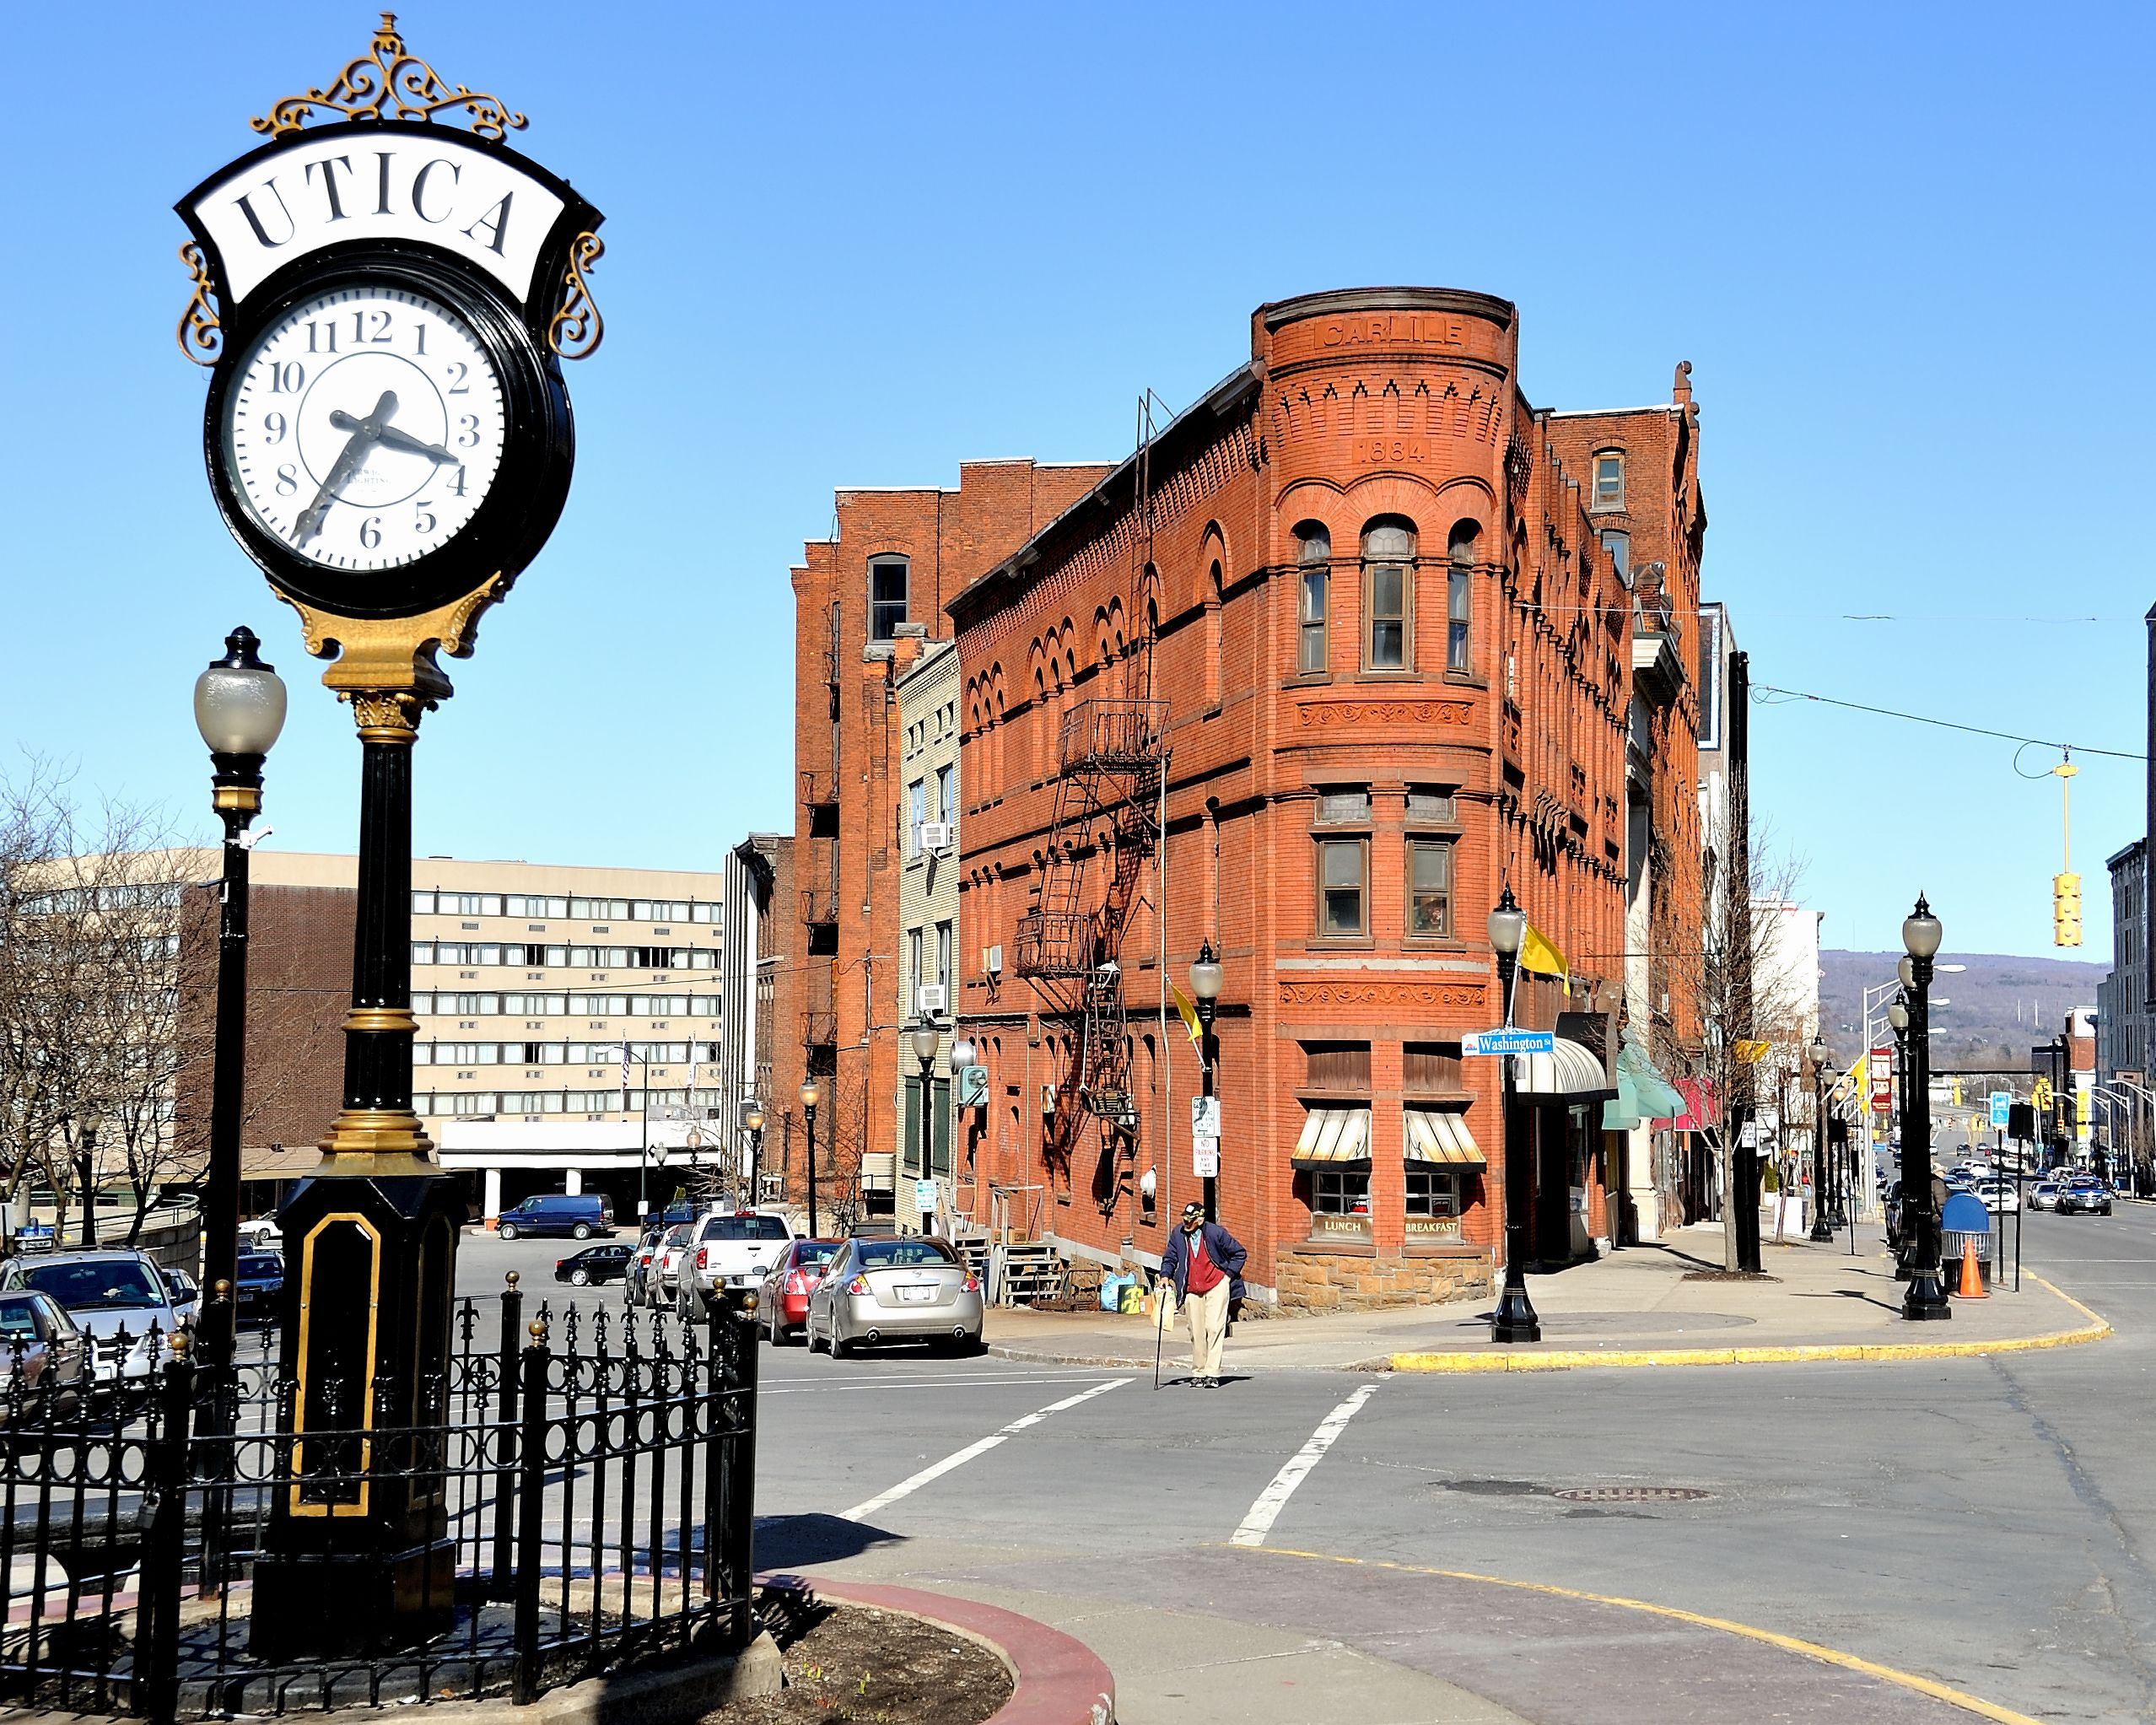 Utica Ny Home Sweet Home For The First 5 Years Of My Life